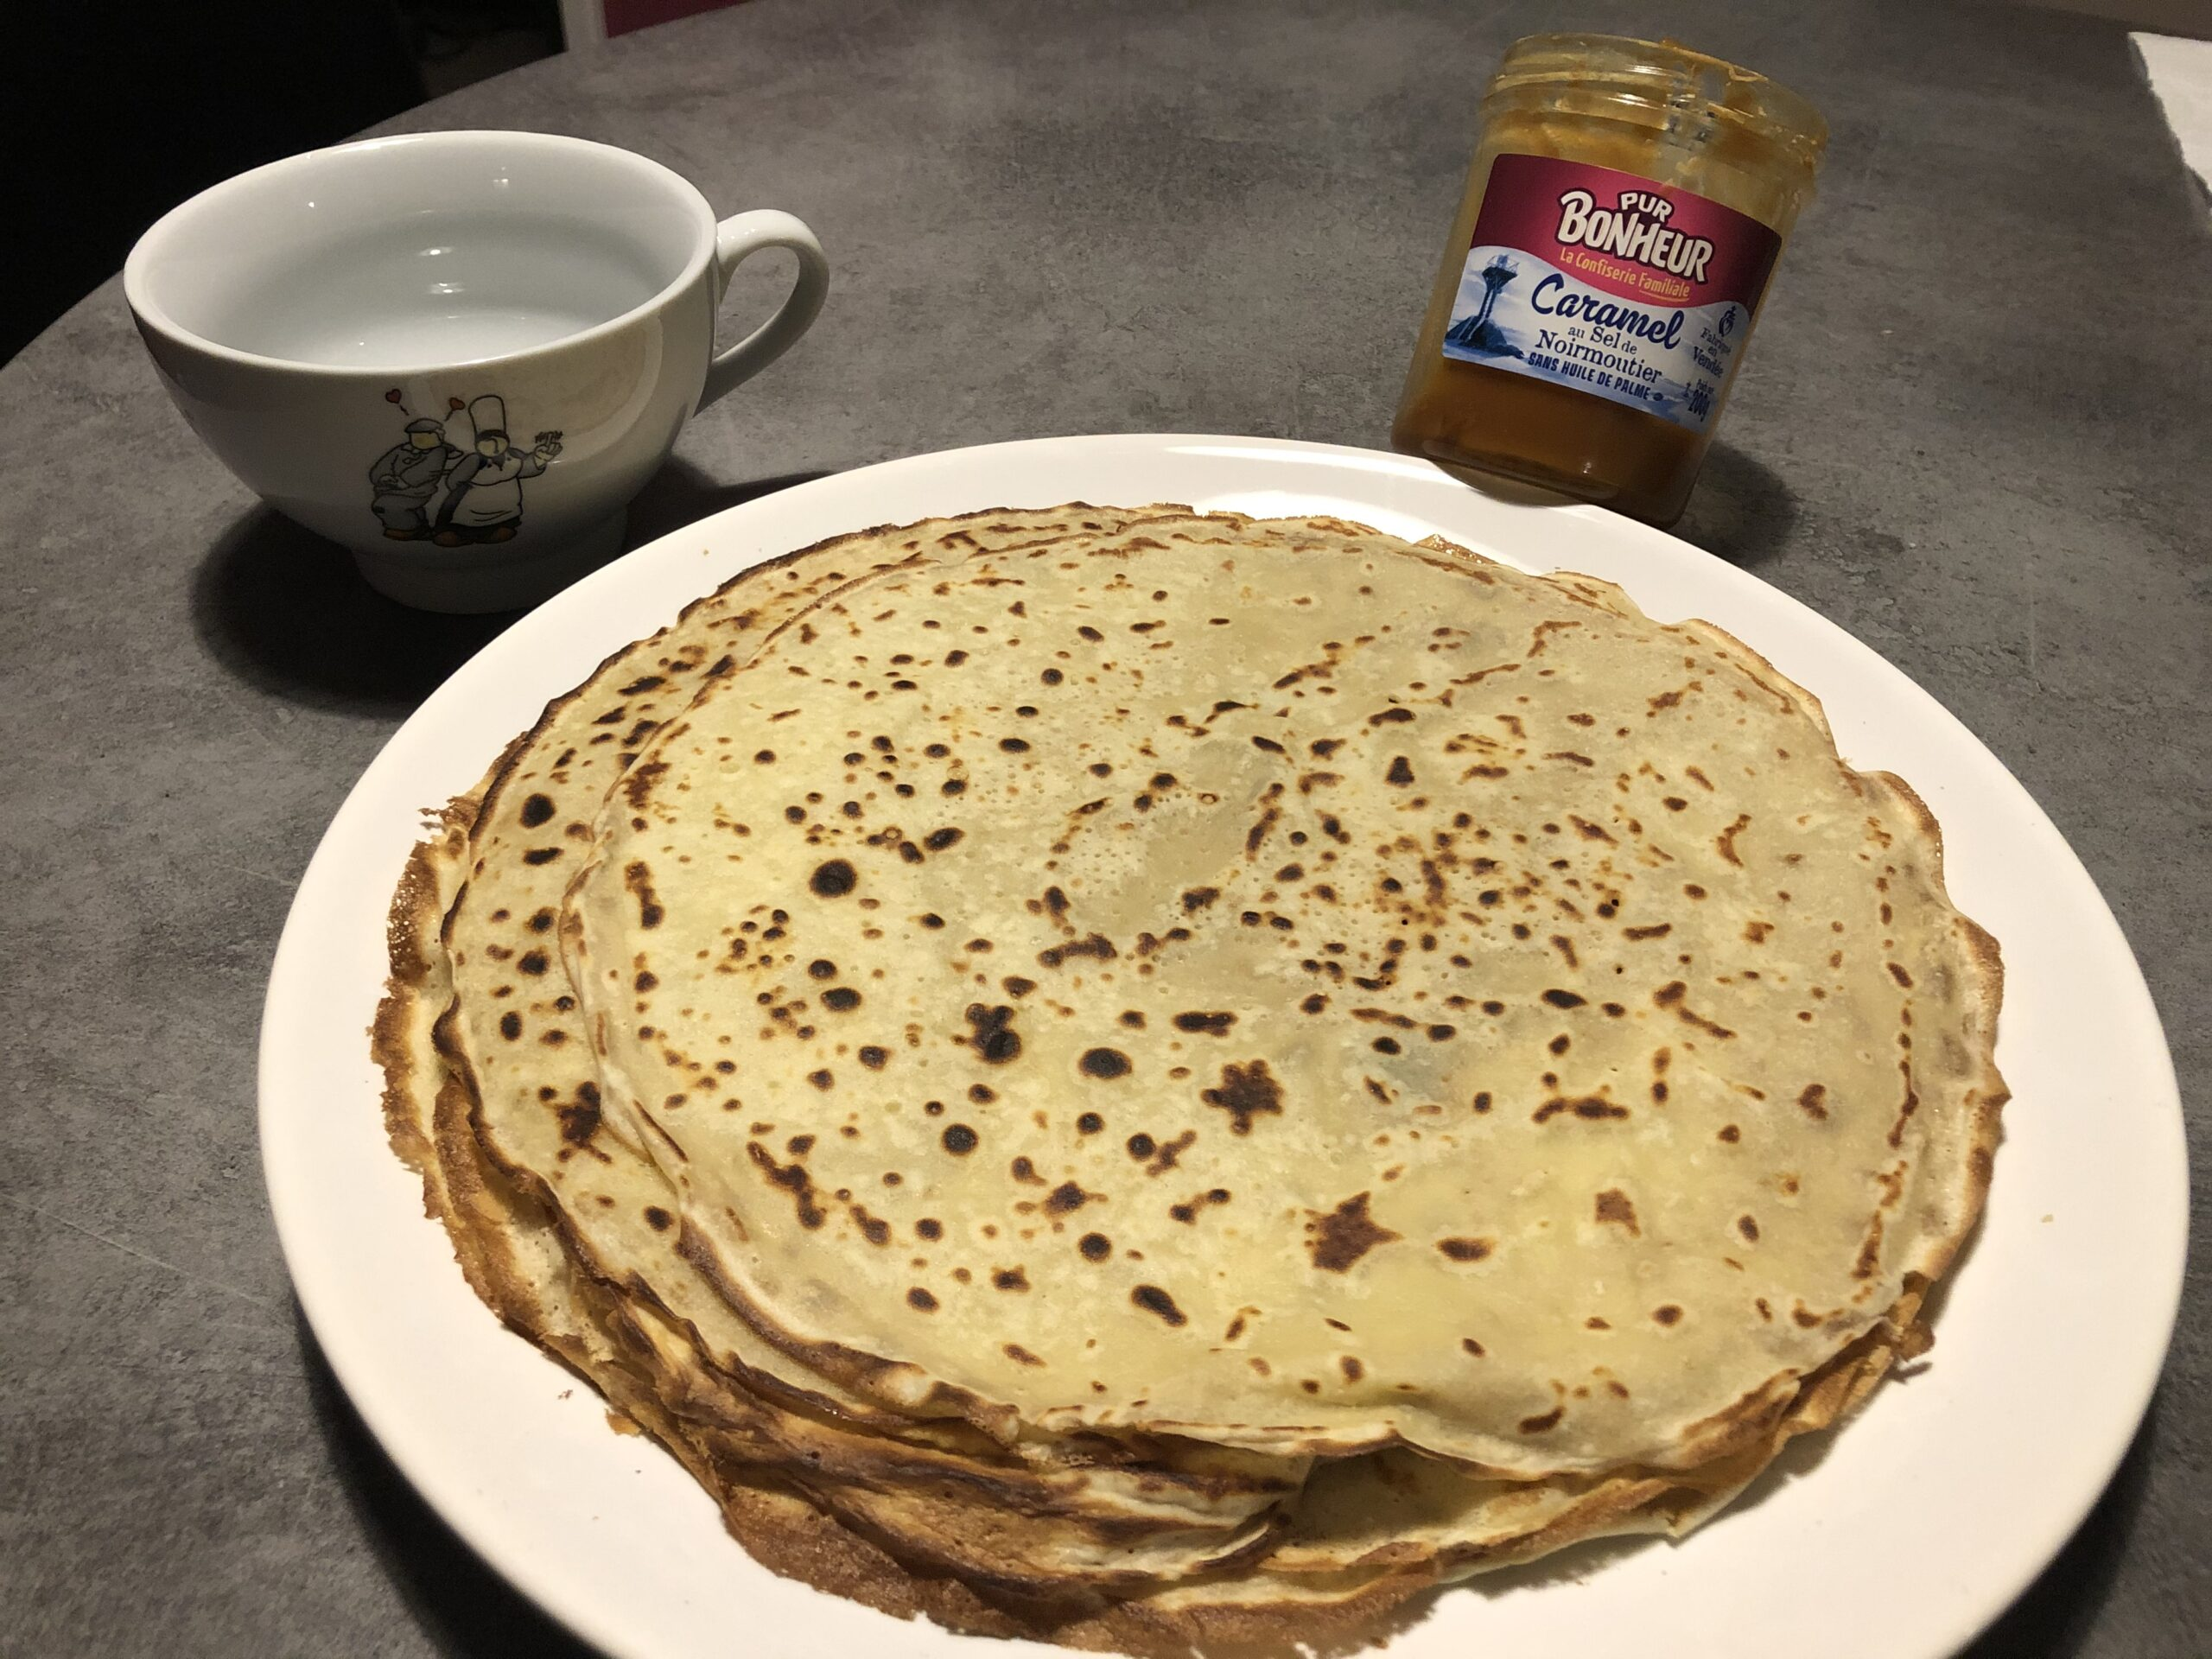 Pate a crepes scaled